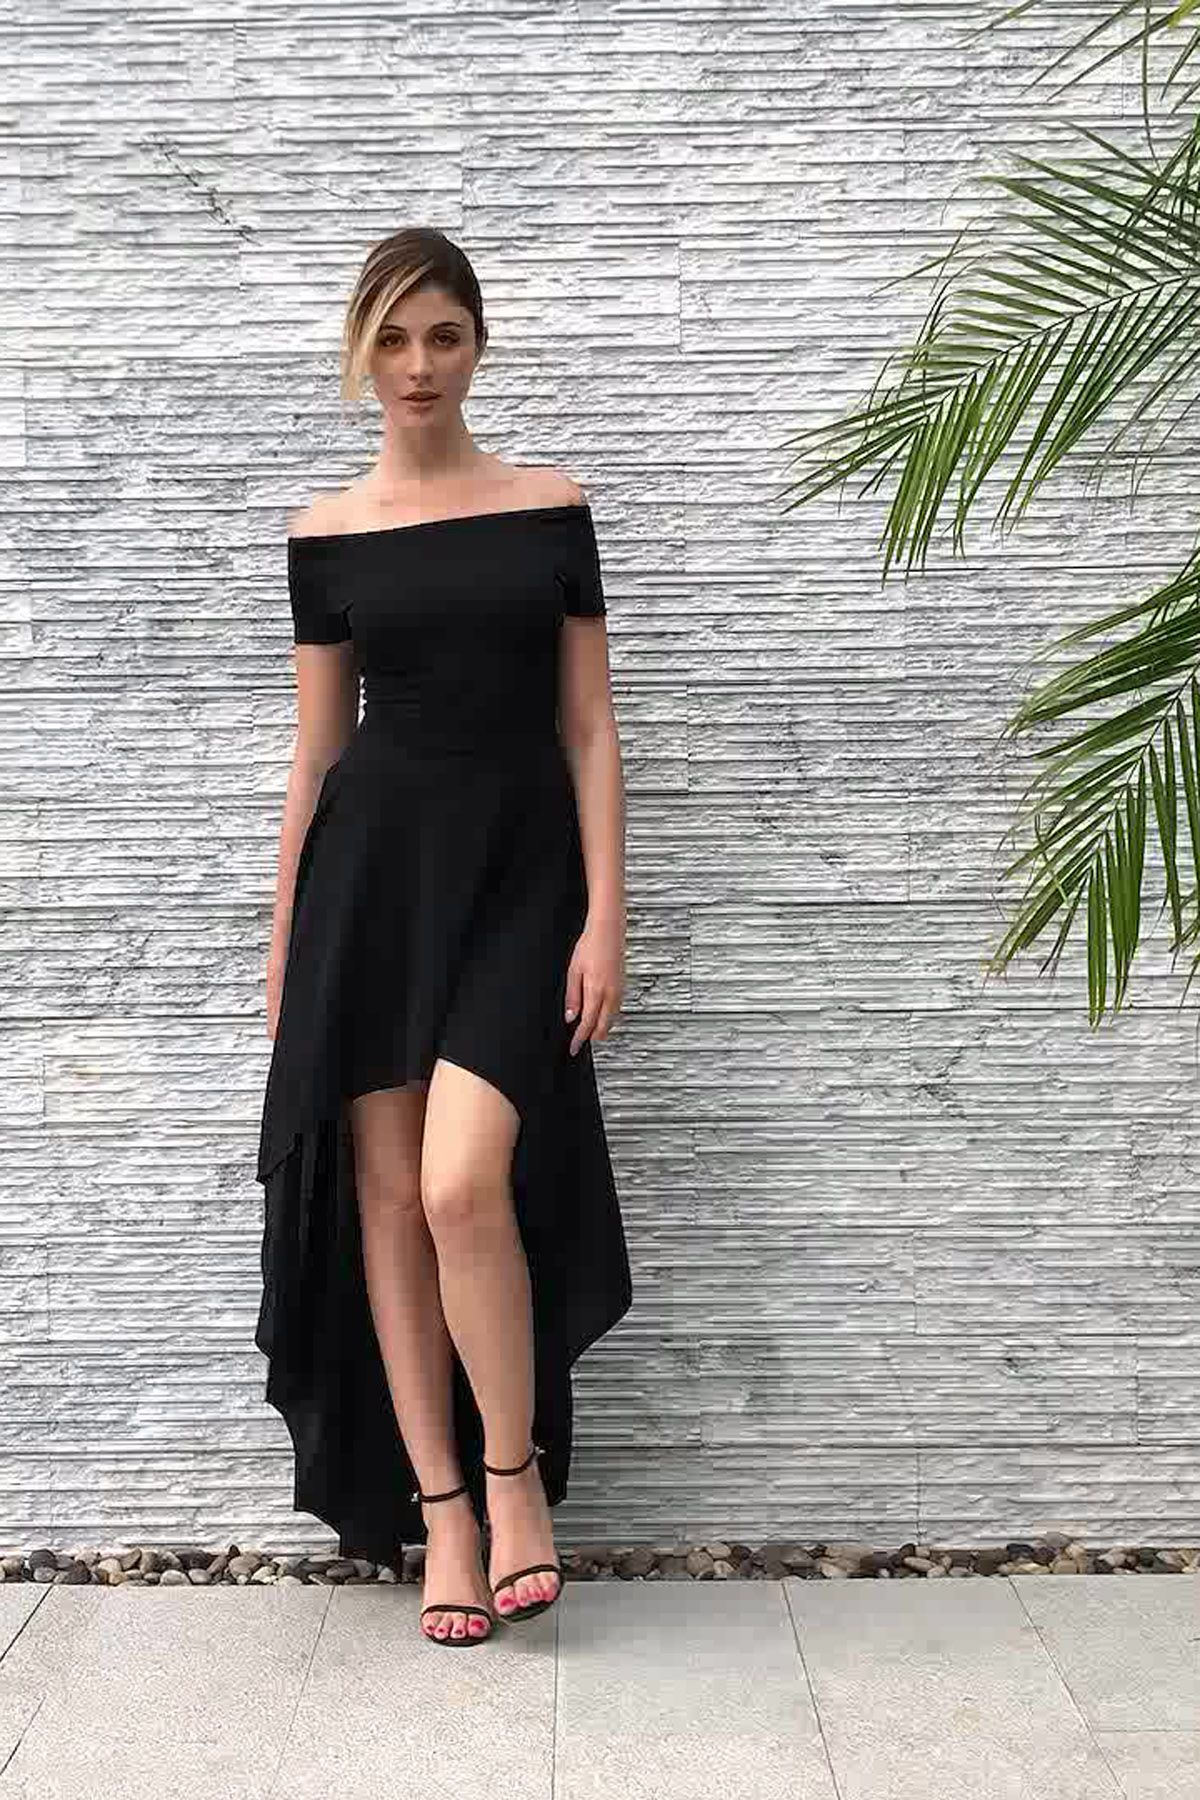 Very sexy yet glamorous youure in this hilow party dress it has an